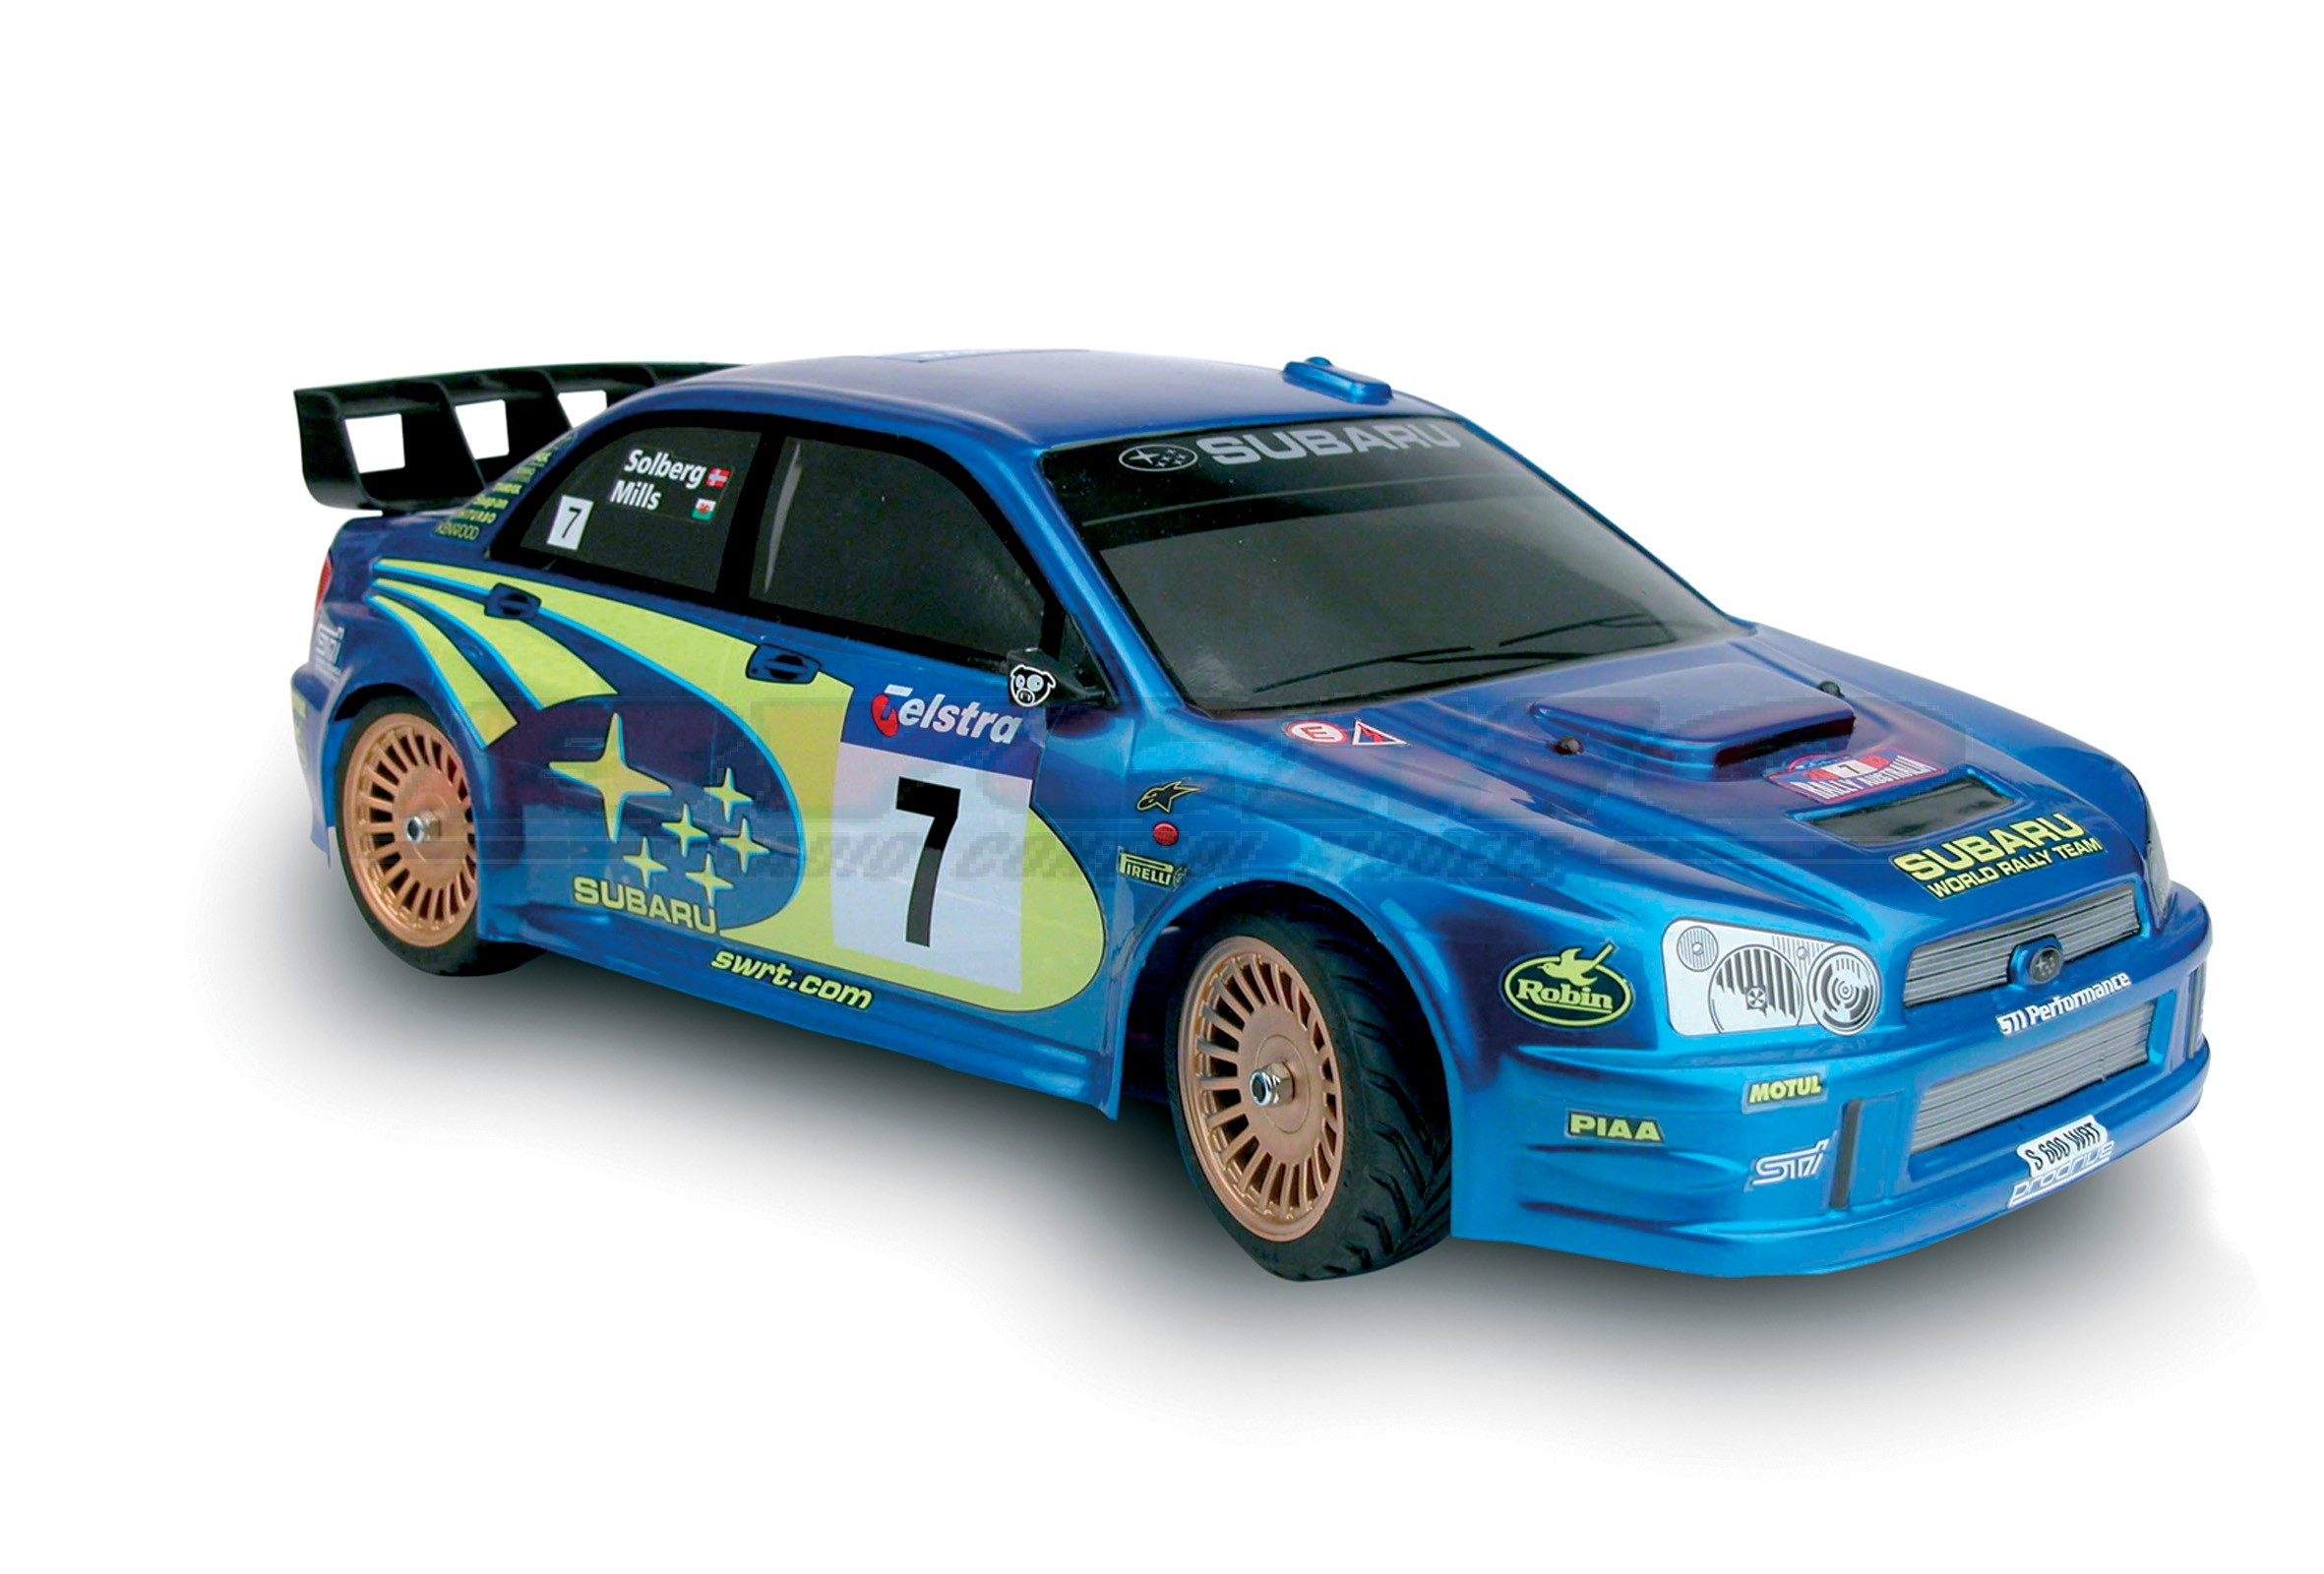 SUBARU WRC 2003 4WD 1/10 TERMICO STICKS    REF 100253 EN KIT